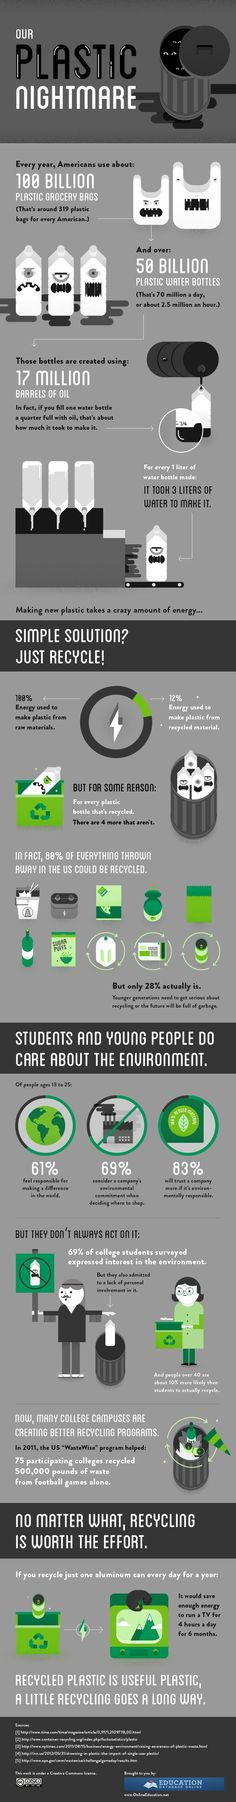 Recycle plastic! #infographic #recylcle